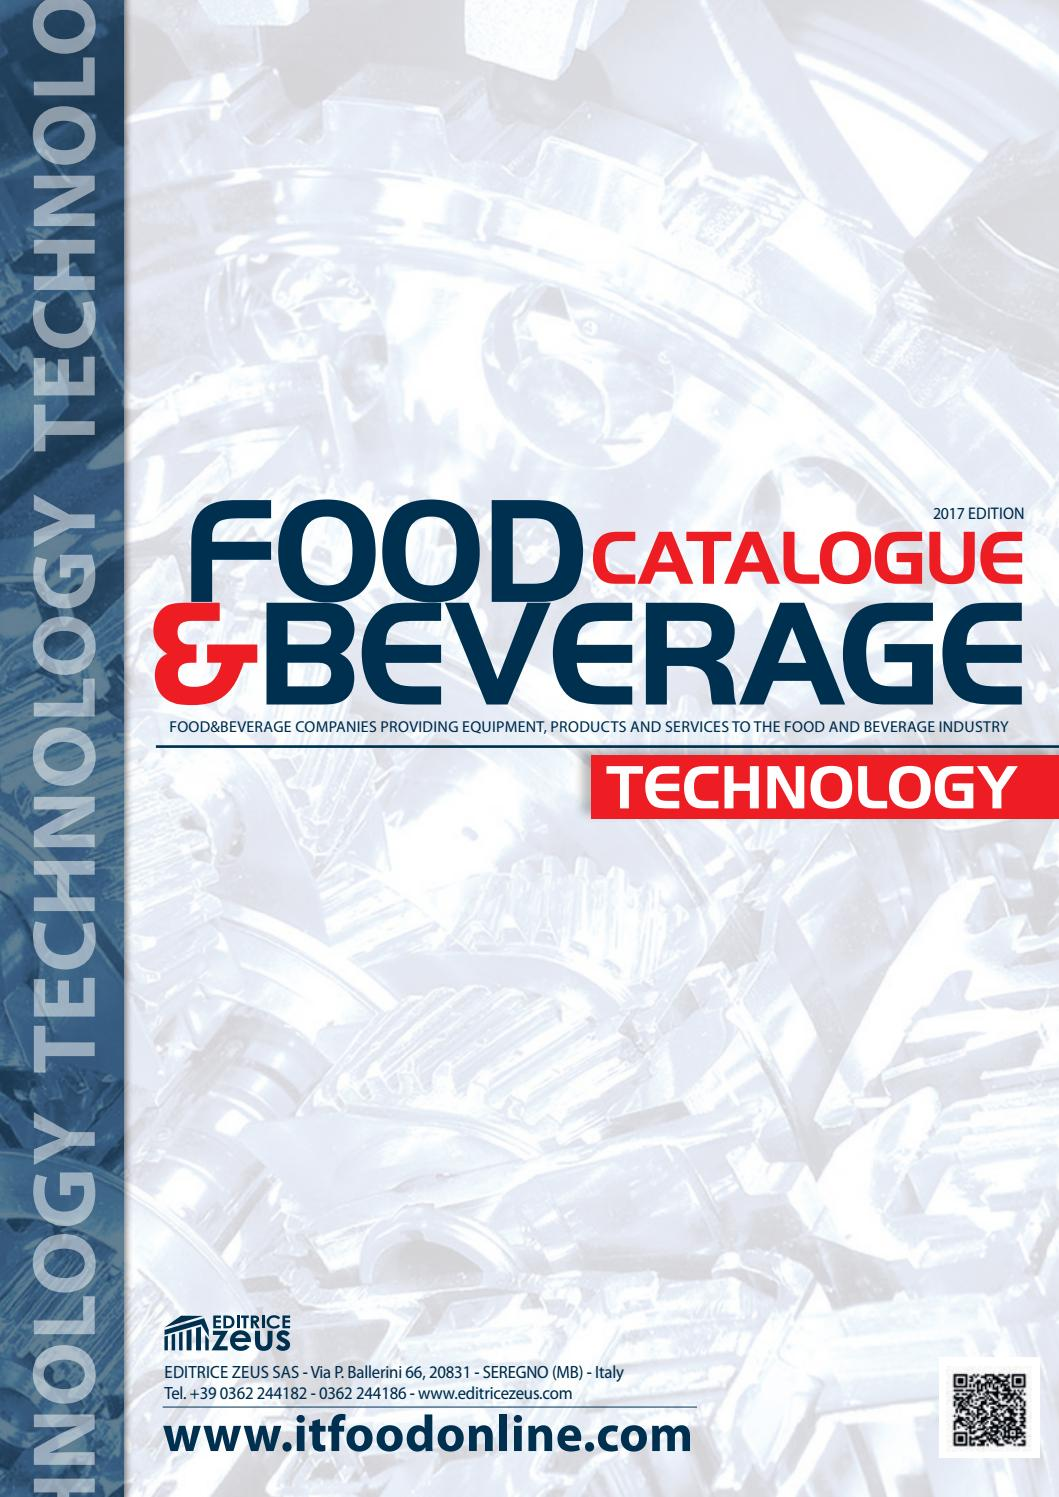 Food Beverage Technology Catalogue 2017 Edition By Editrice Zeus